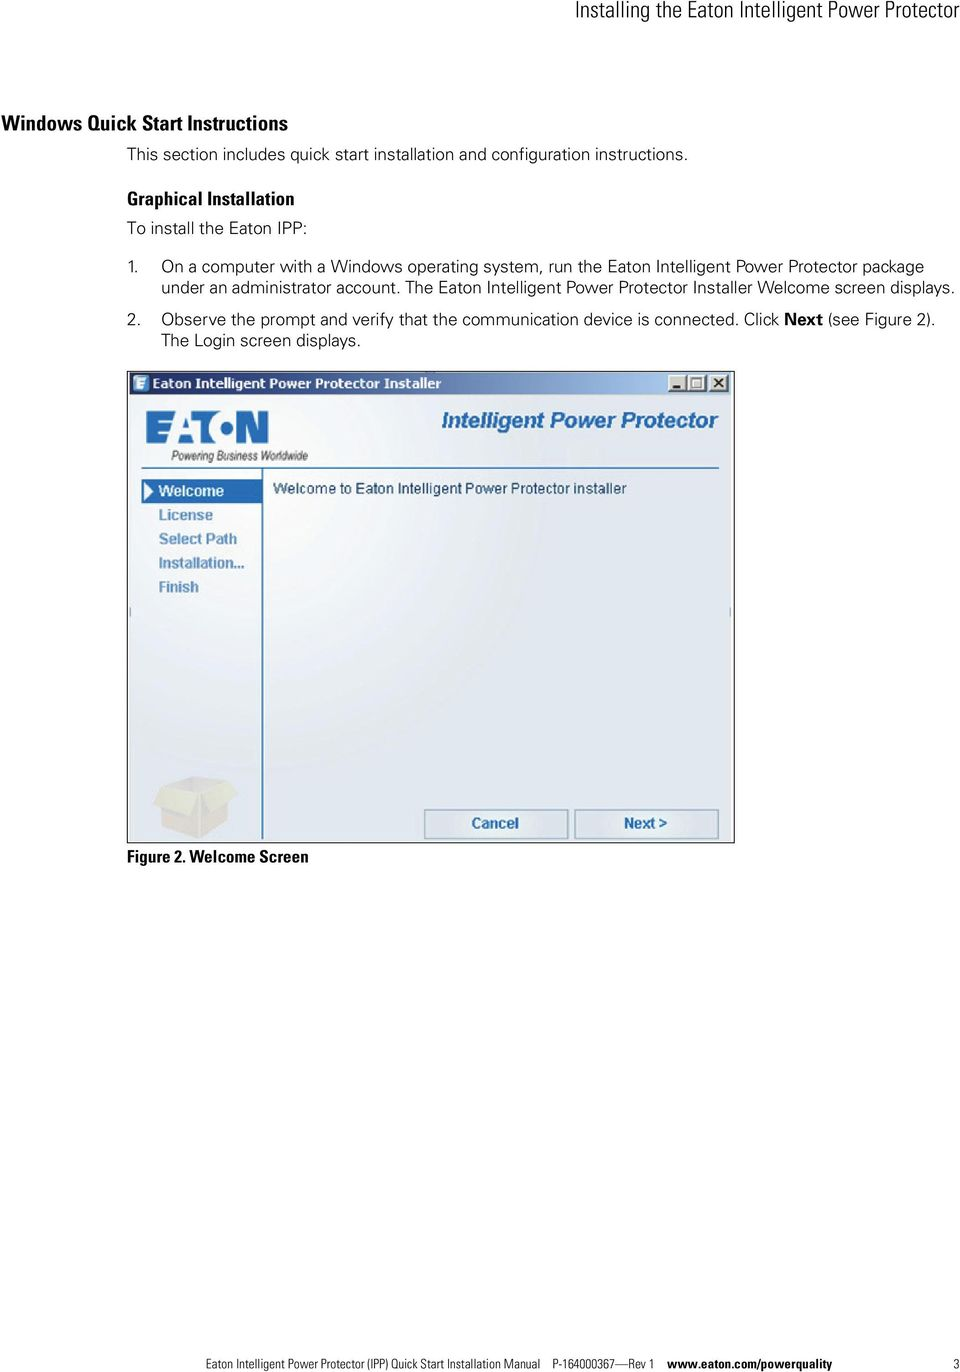 On a computer with a Windows operating system, run the Eaton Inteigent Power Protector package under an administrator account.